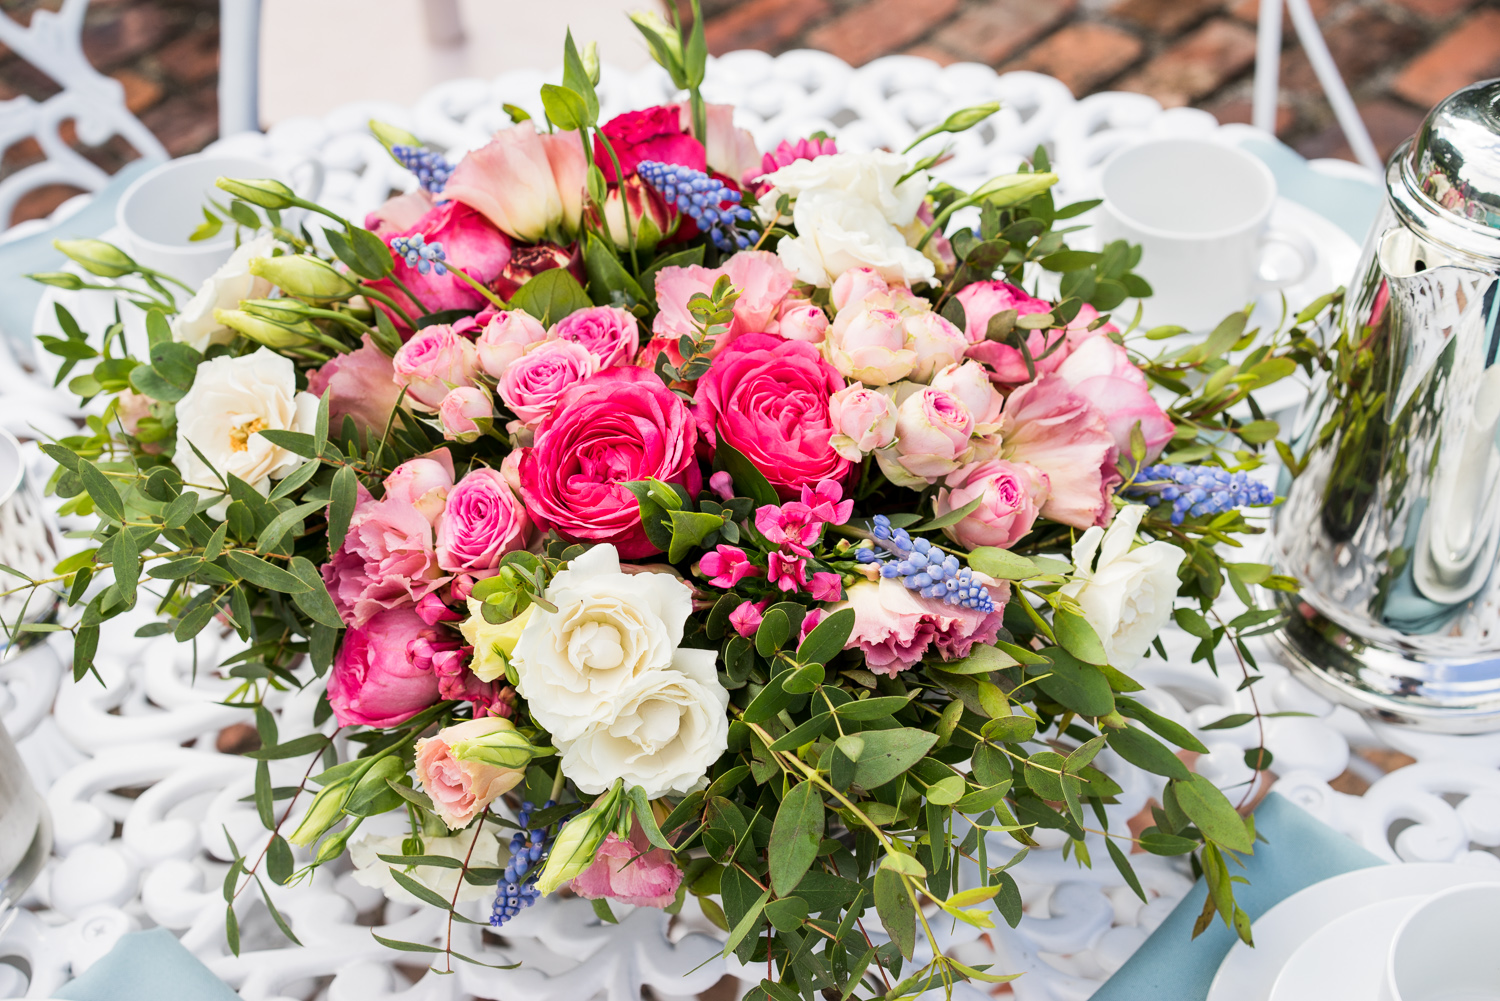 mother's day flower arranging ideas  best mothers day floral, Beautiful flower